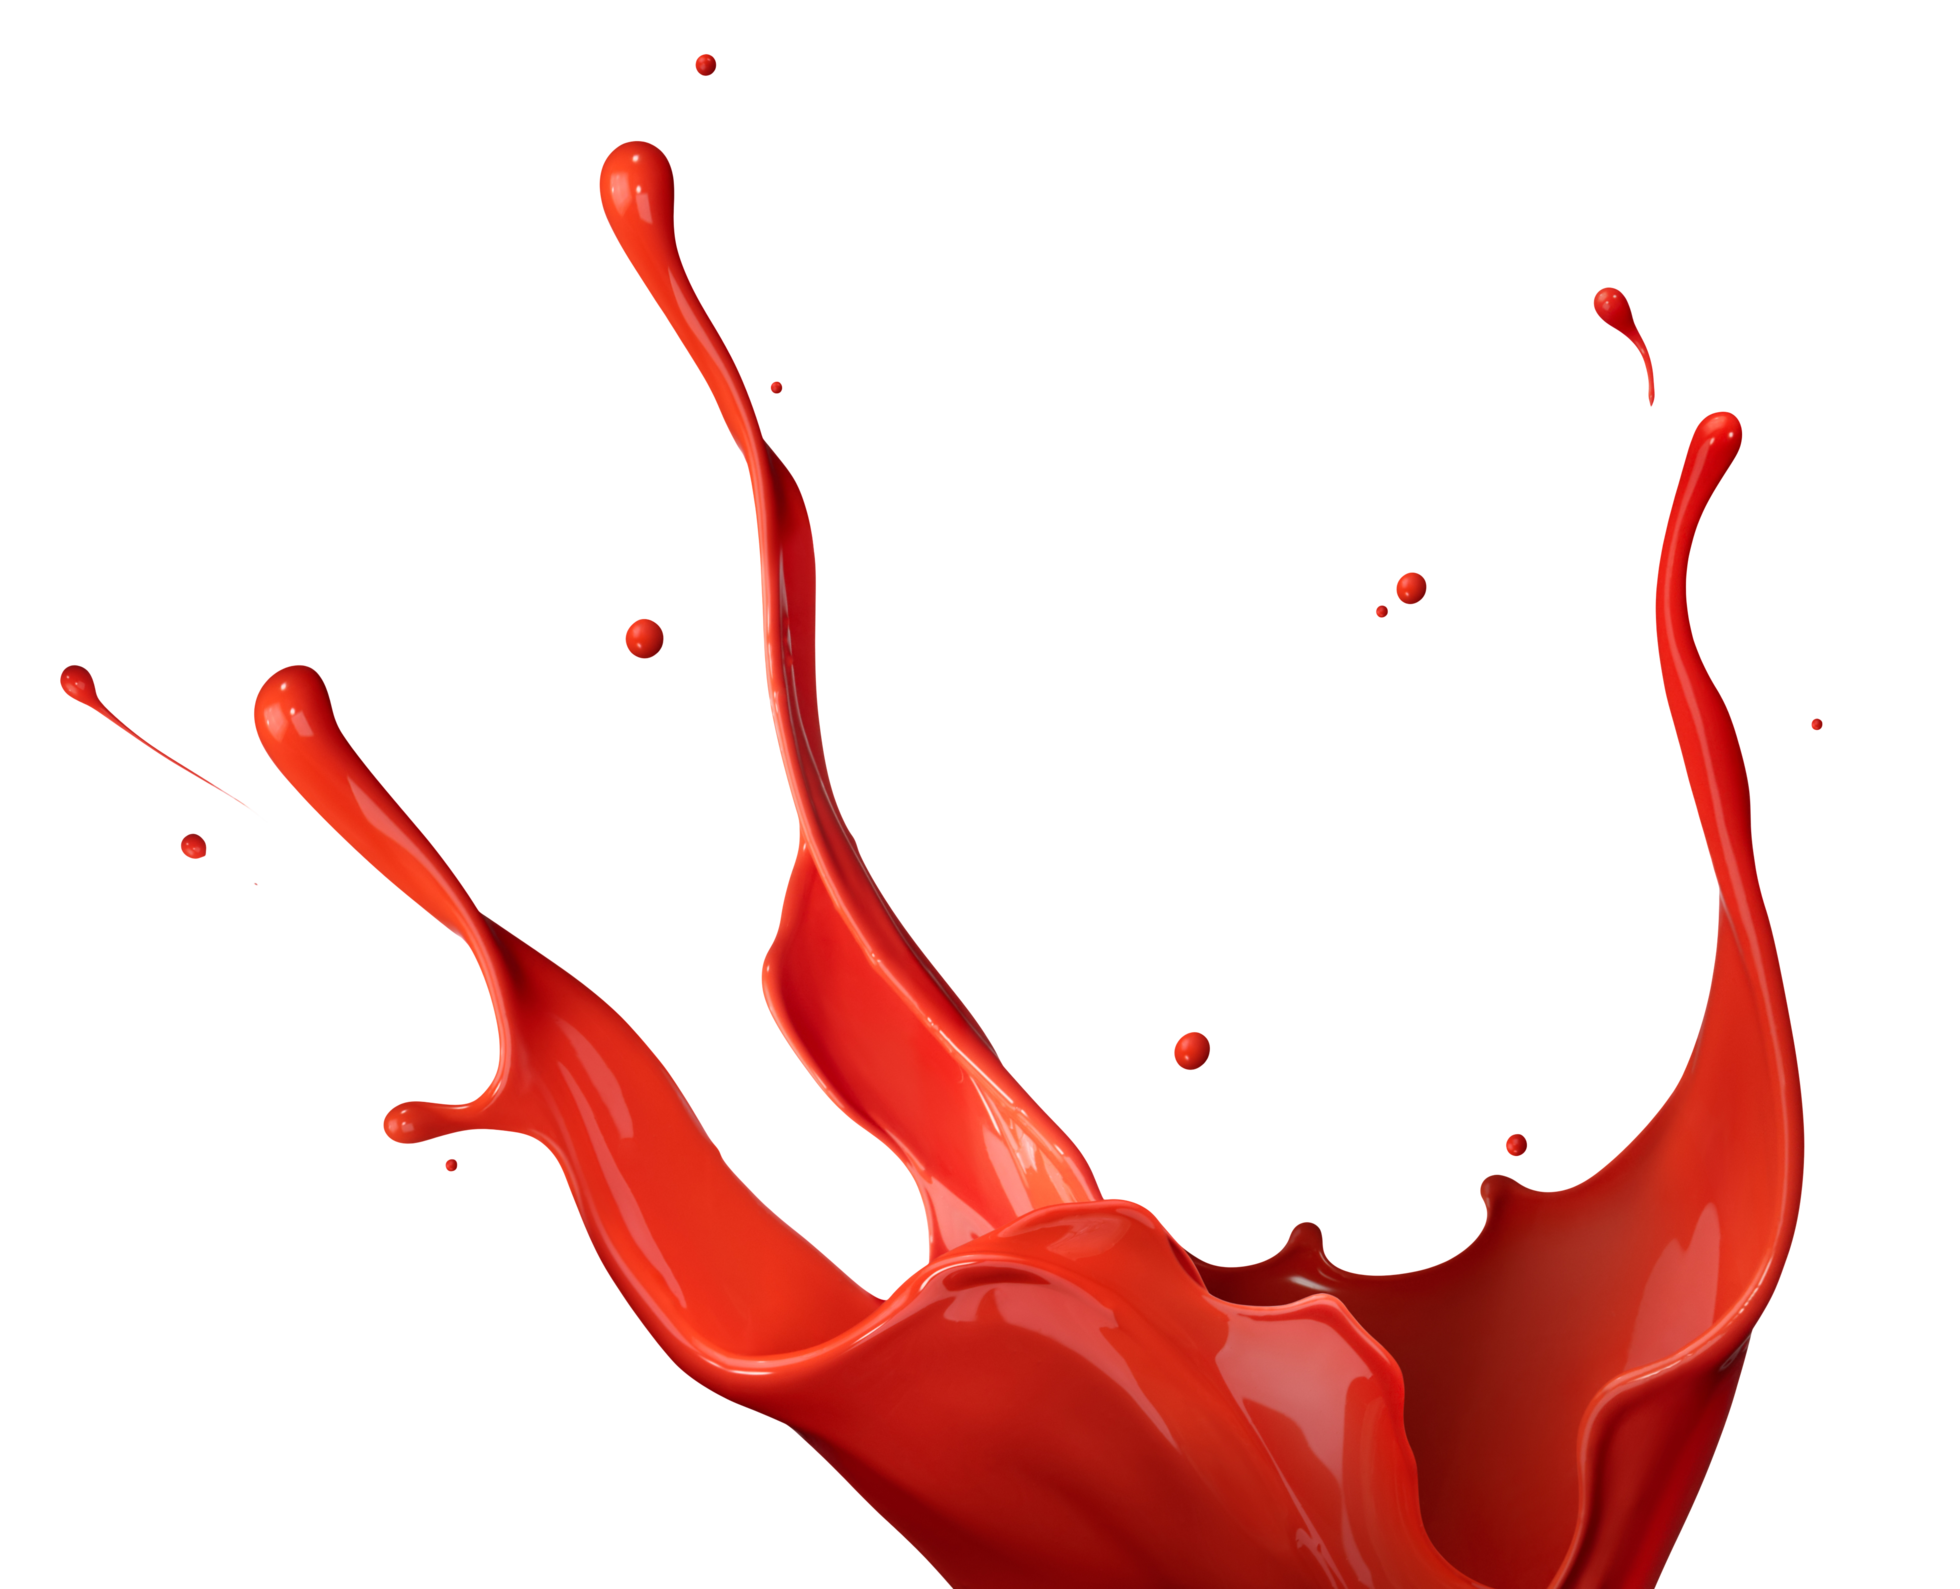 red+paint+splatter.png